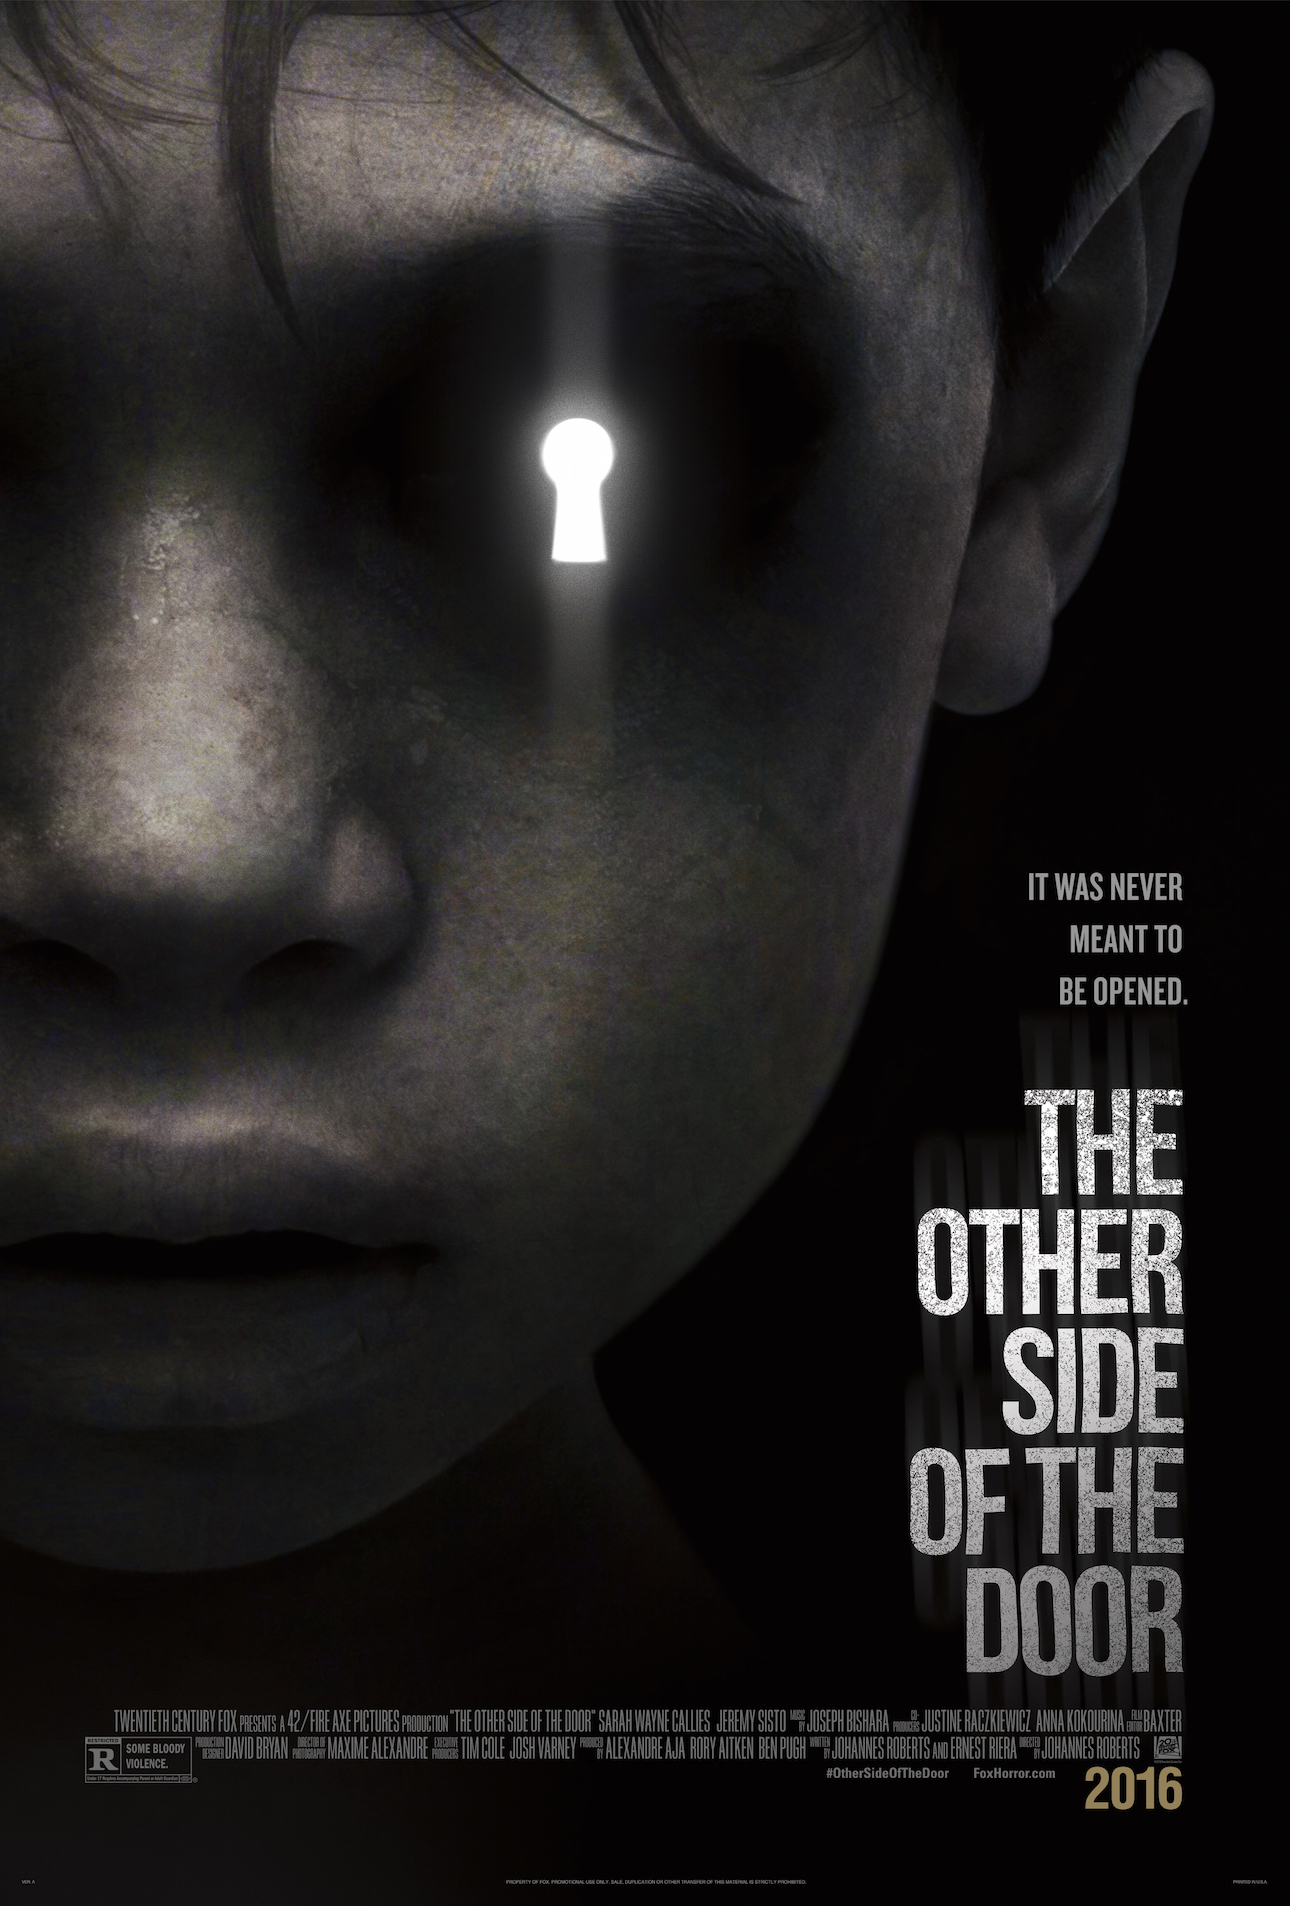 The Other Side Of The Door film review